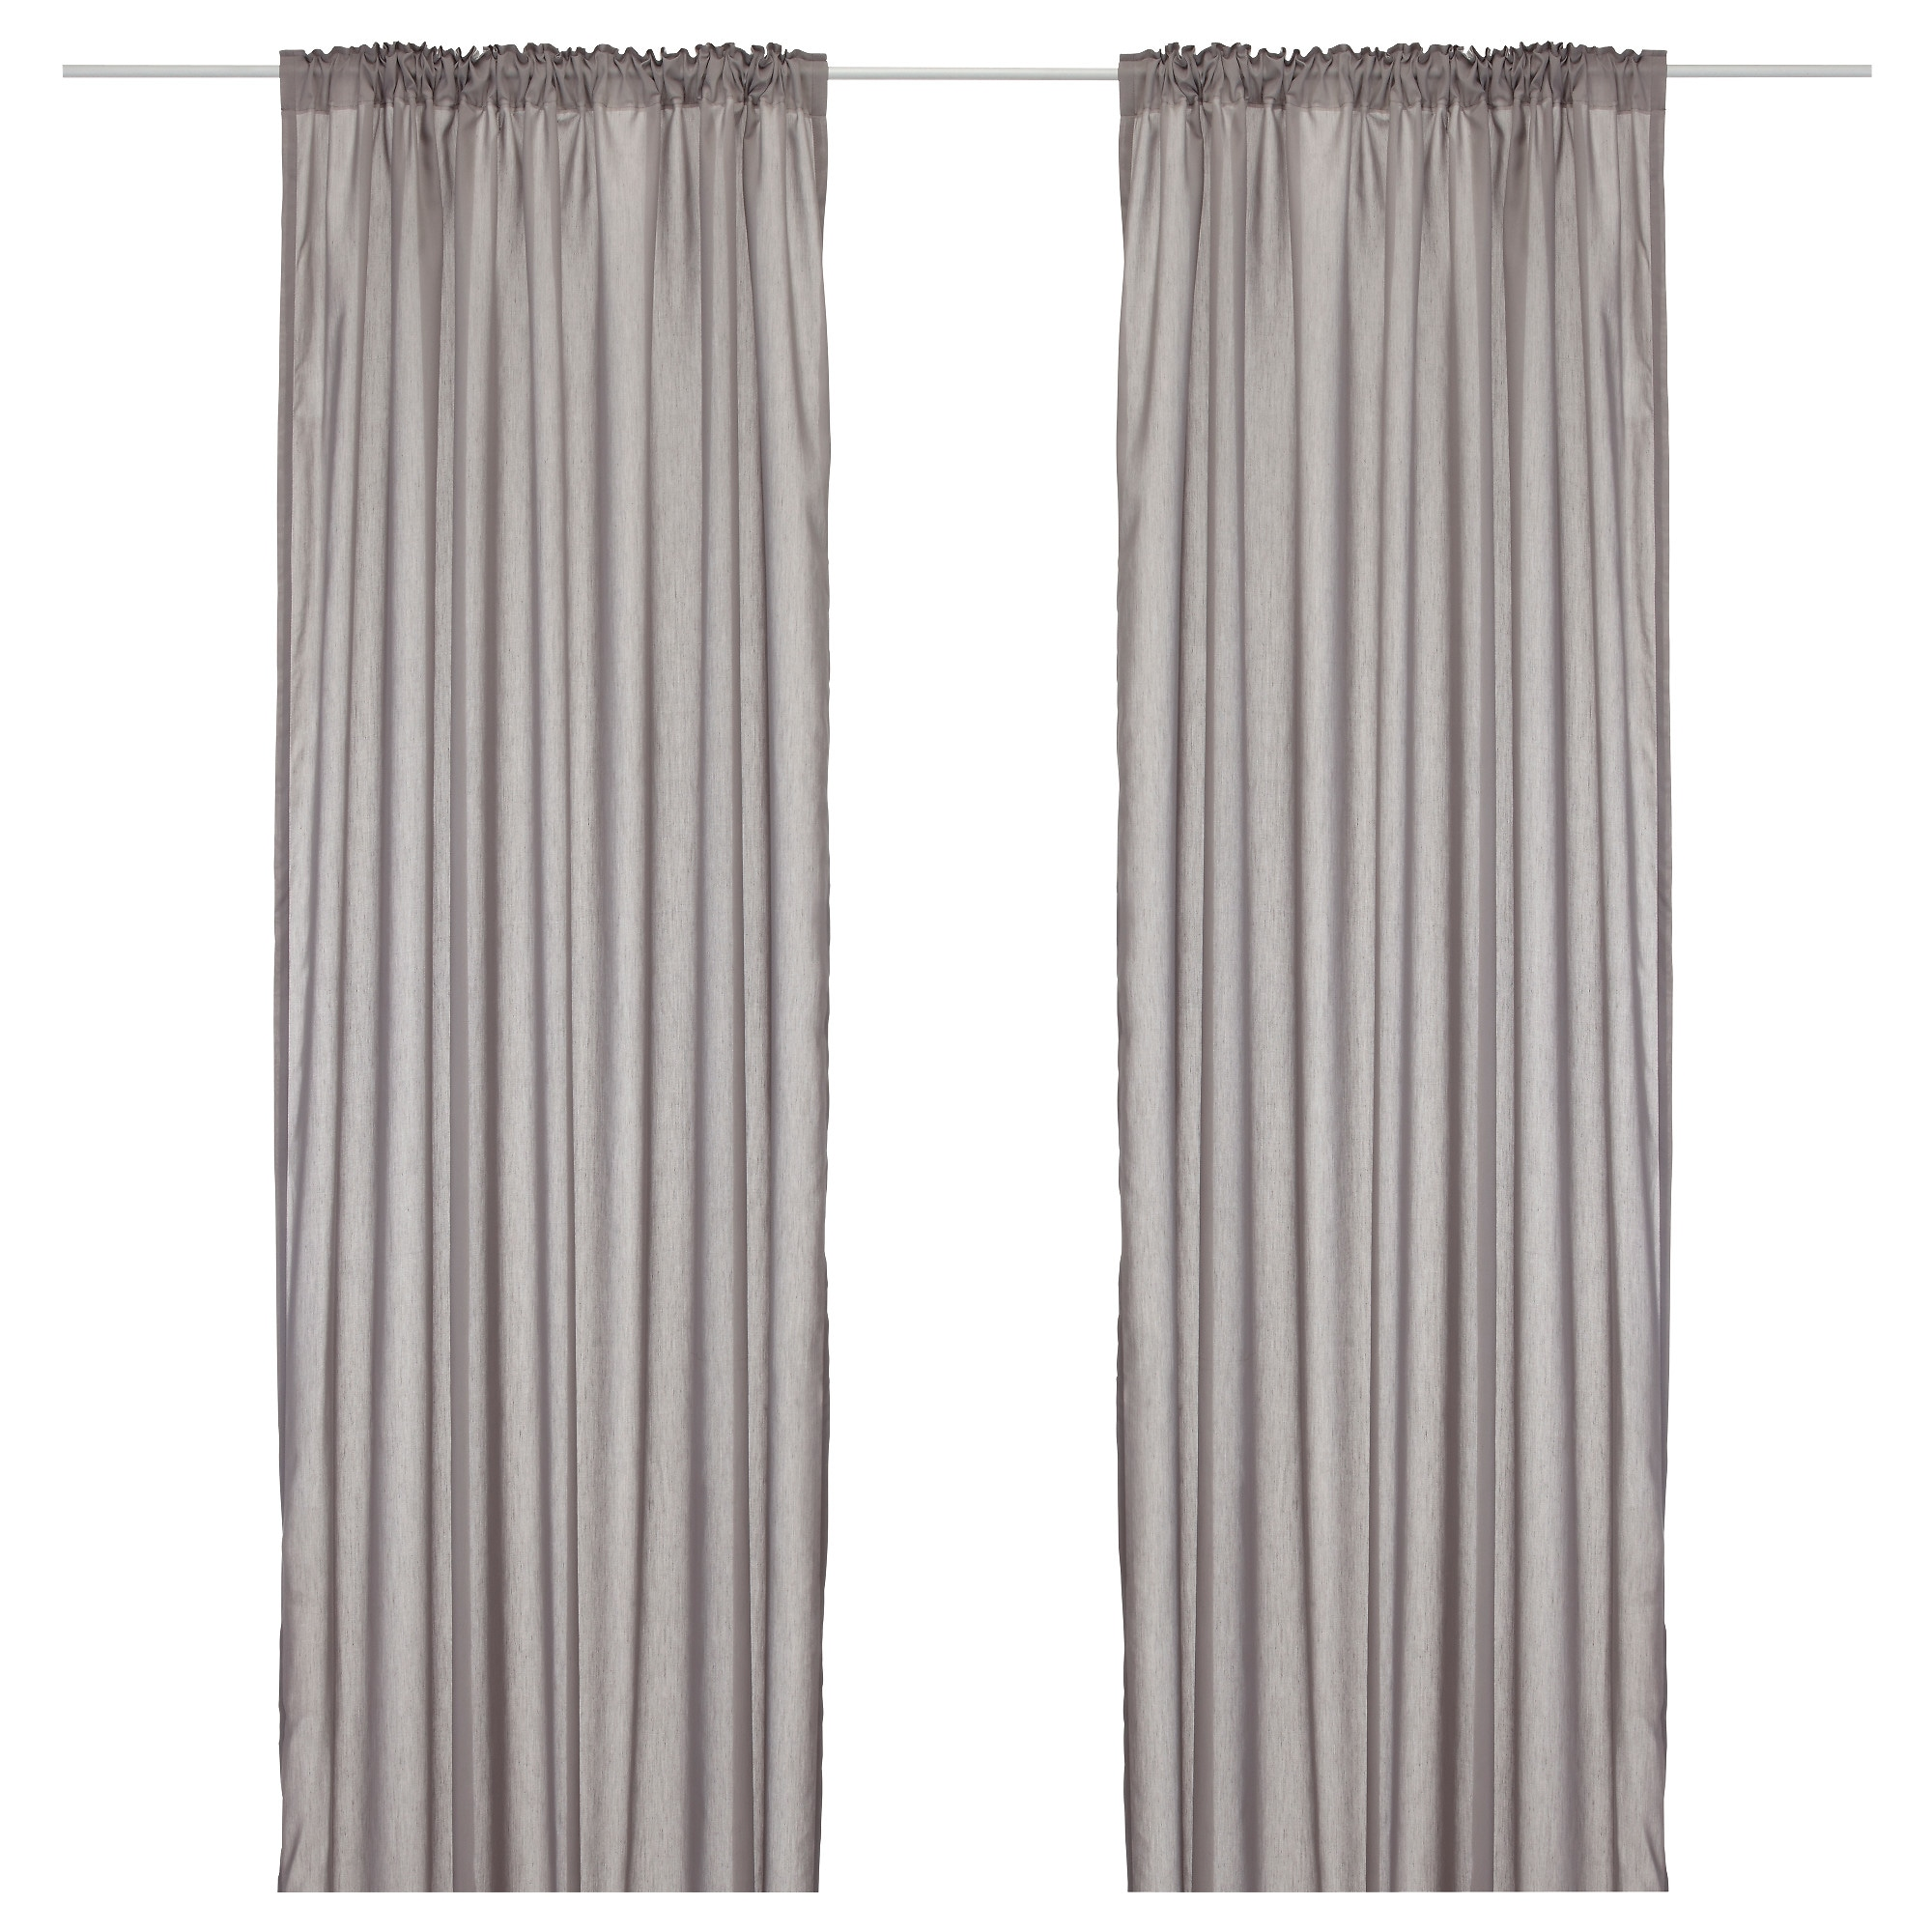 White curtains bedroom - Vivan Curtains 1 Pair Gray Length 98 Width 57